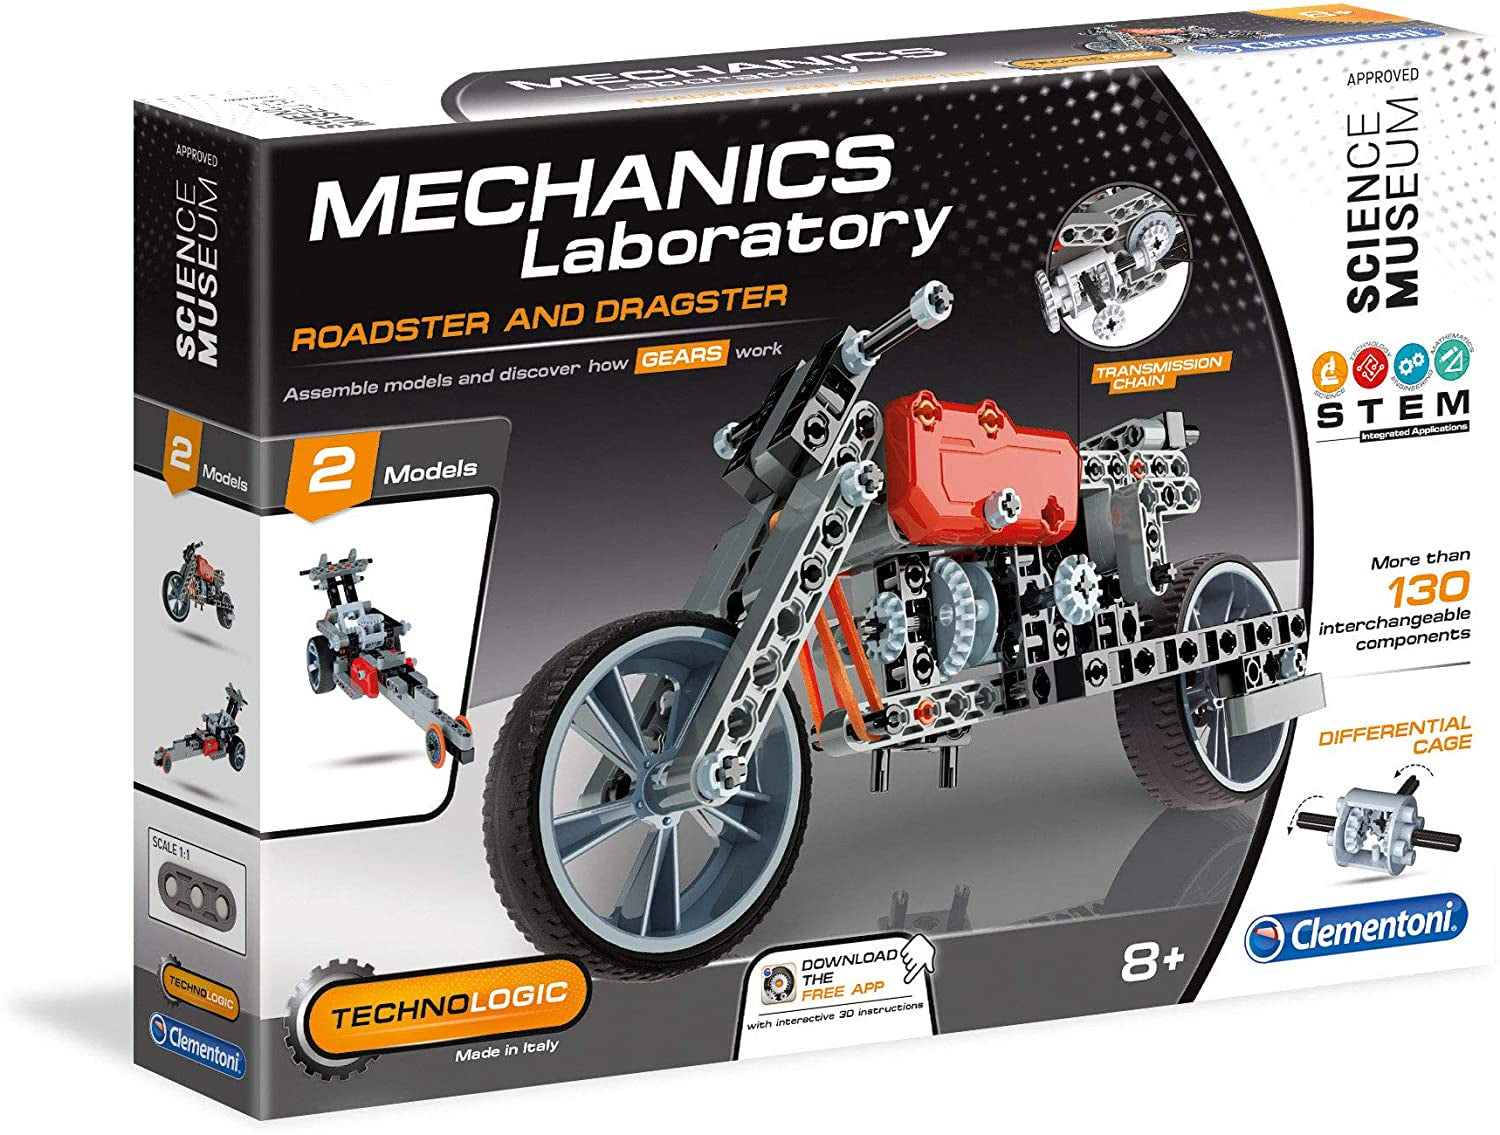 Mechanics Laboratory Roadster And Dragster Construction Set